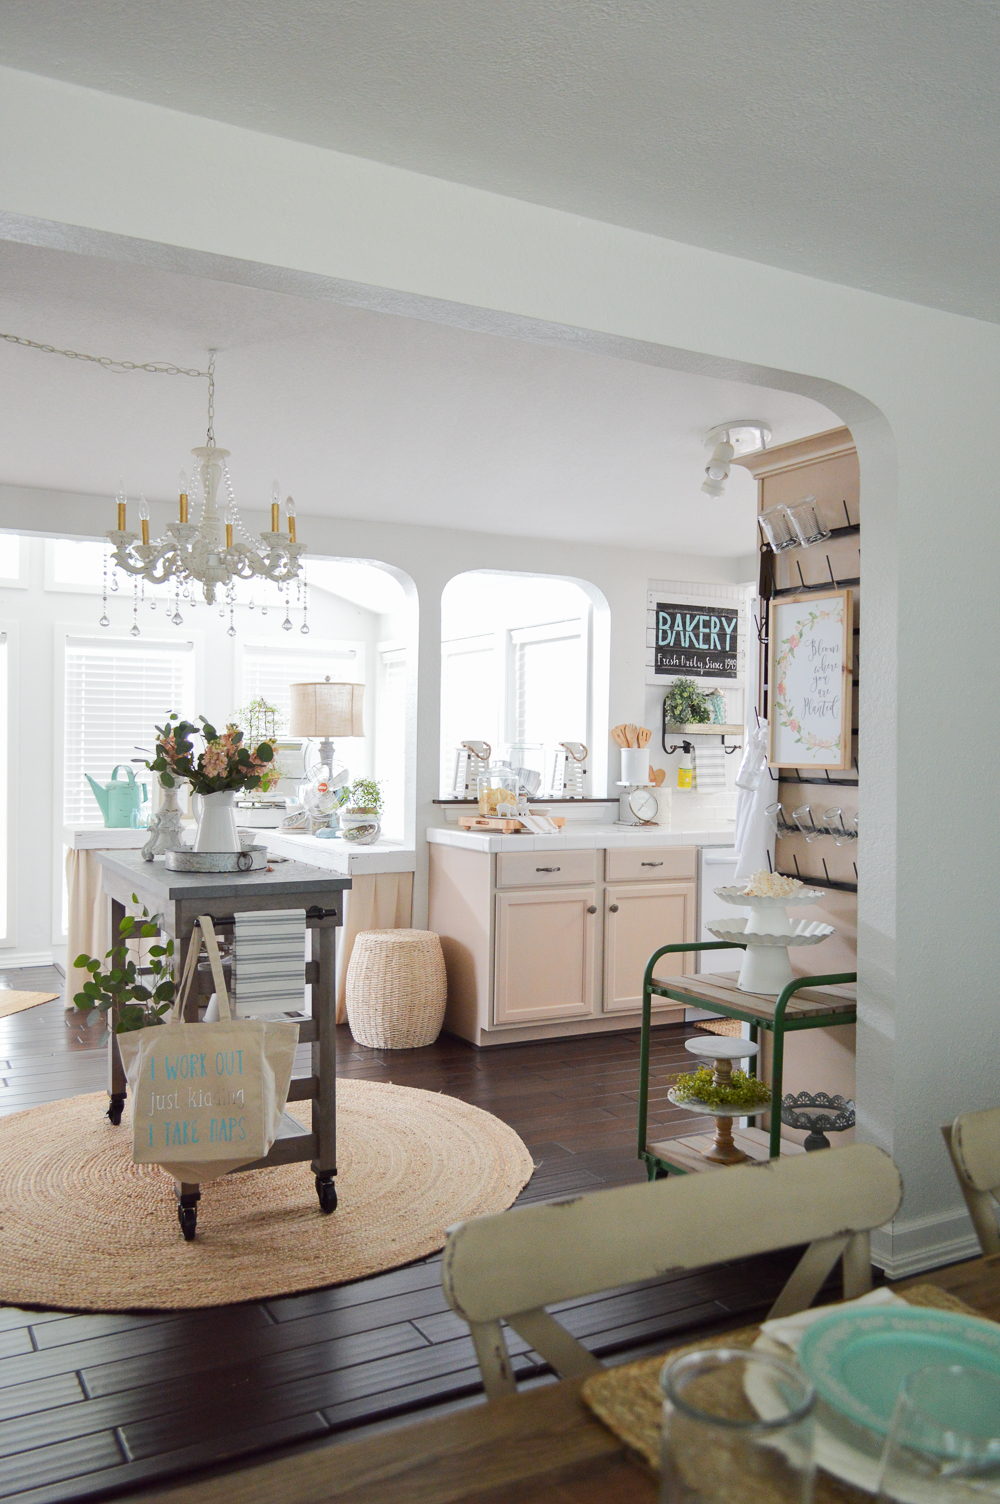 Simple Summer Decorating Ideas and Home Tour - cottage kitchen with modern farmhouse island cart and shabby chandelier